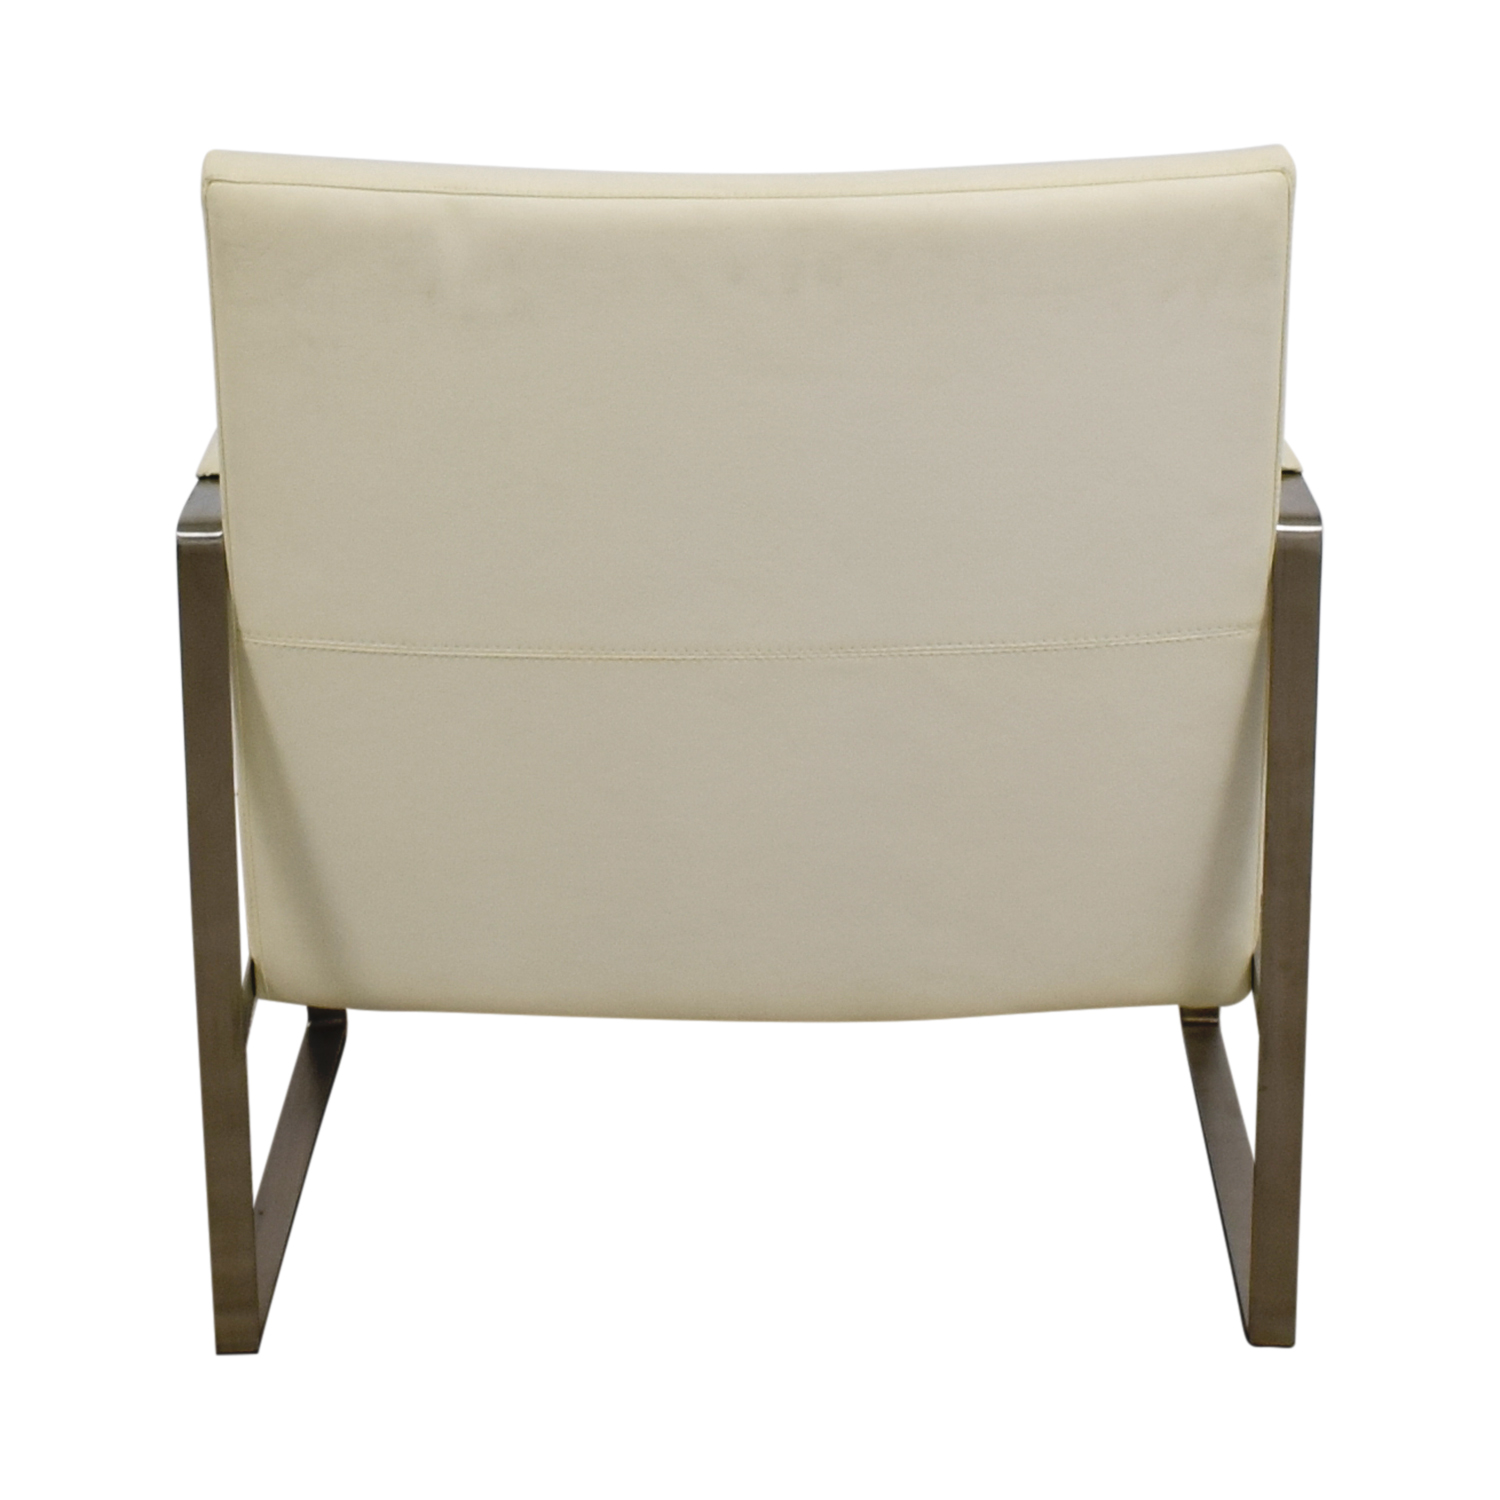 Zara Soho Concept Zara Soho Concept White and Chrome Accent Chair with Pillow on sale